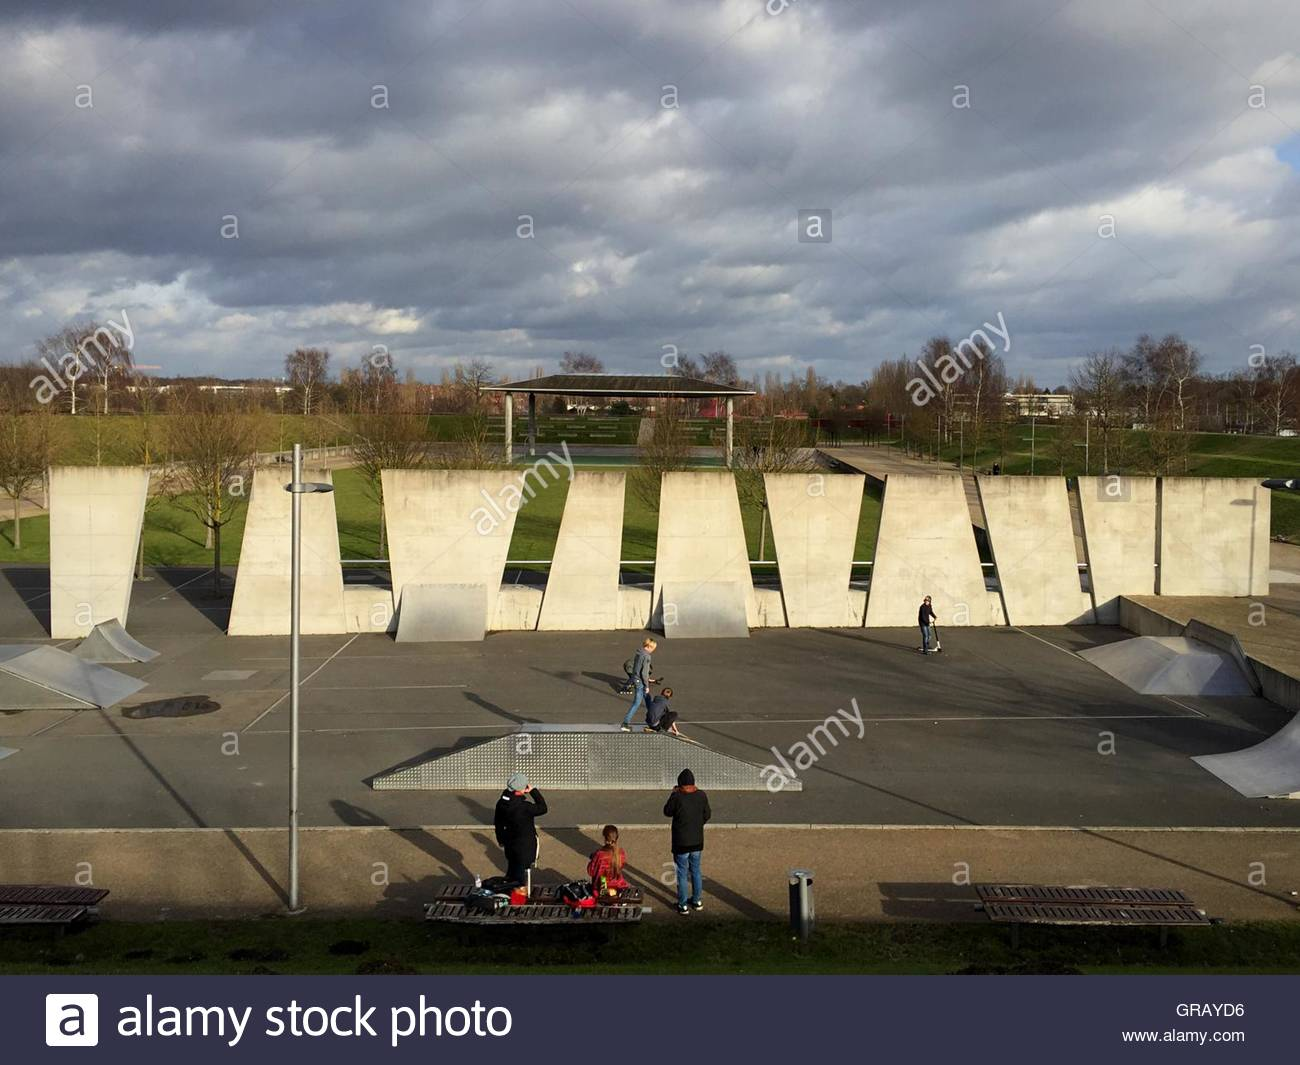 High Angle View Of People At Volkspark Potsdam Against Cloudy Sky - Stock Image